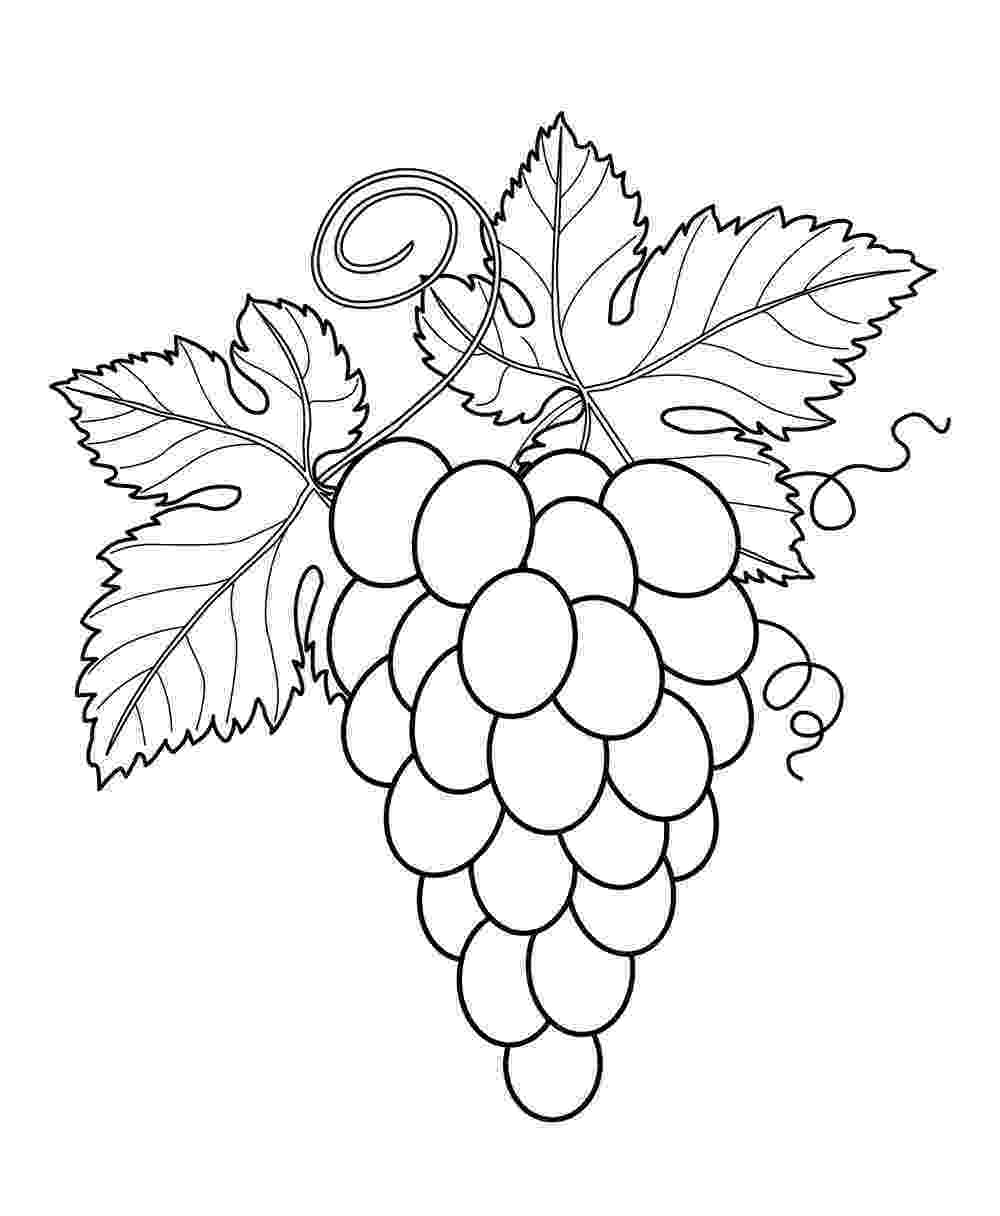 fruit images to color coloring ville images fruit color to